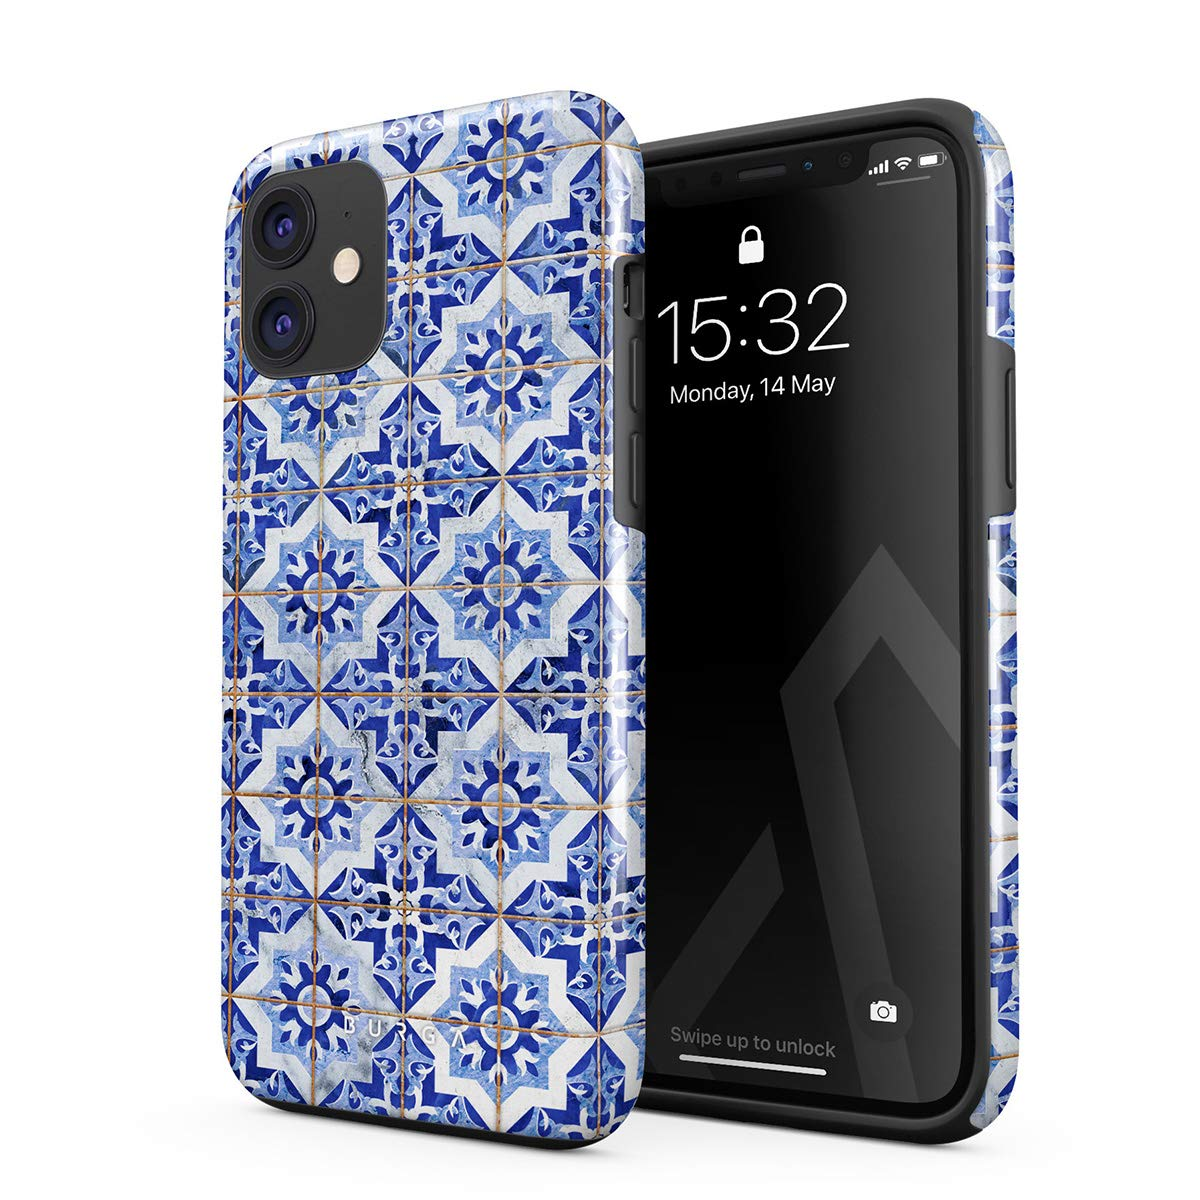 BURGA Phone Case Compatible with iPhone 11 - Blue City Moroccan Tiles Pattern Mosaic Cute Case for Girls Heavy Duty Shockproof Dual Layer Hard Shell + Silicone Protective Cover